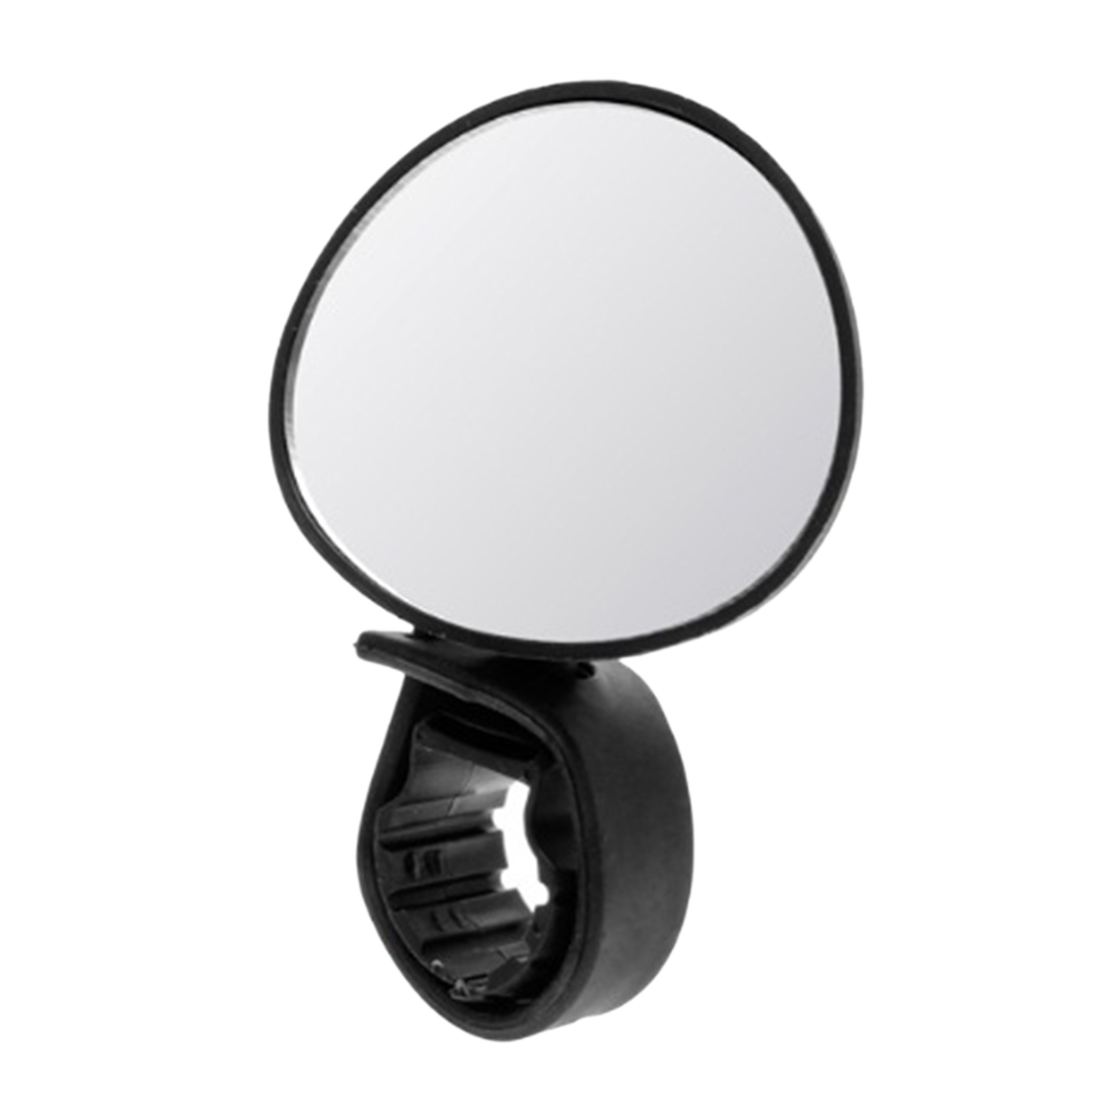 1 Pcs 360 Degree Rotating Handlebar Convex Mirror Bicycle Rearview Mirror - Black